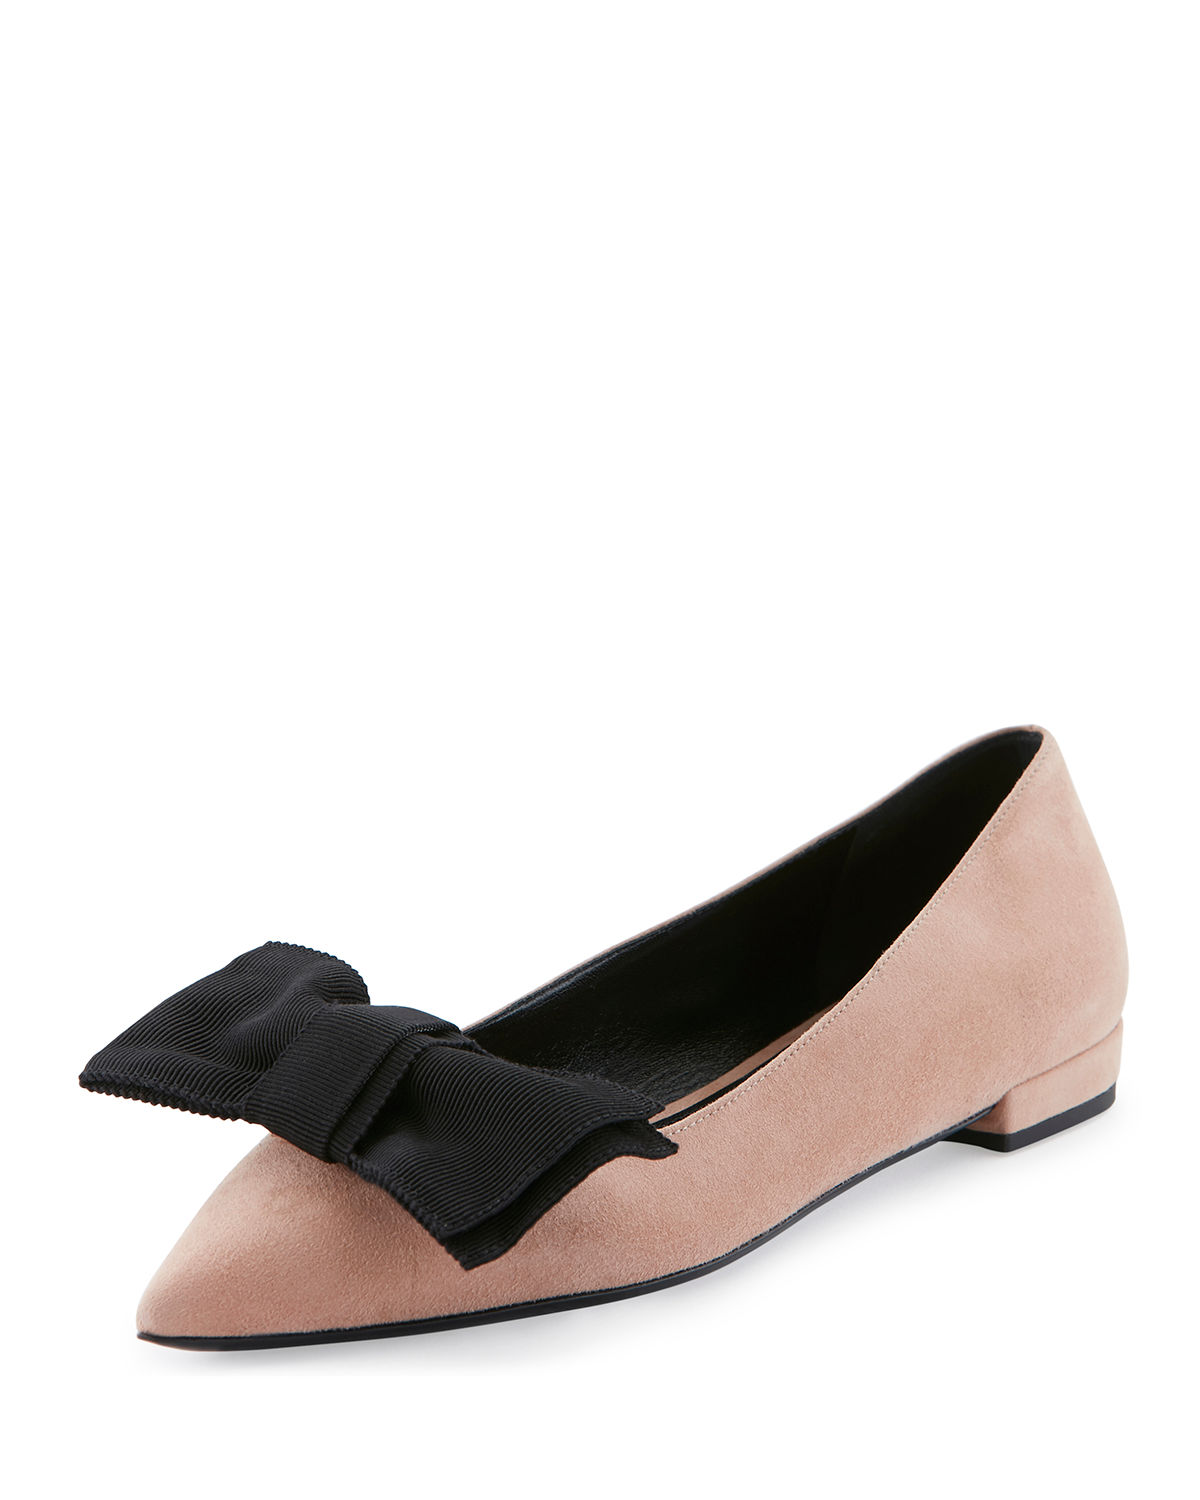 Suede Point-Toe Bow Flat